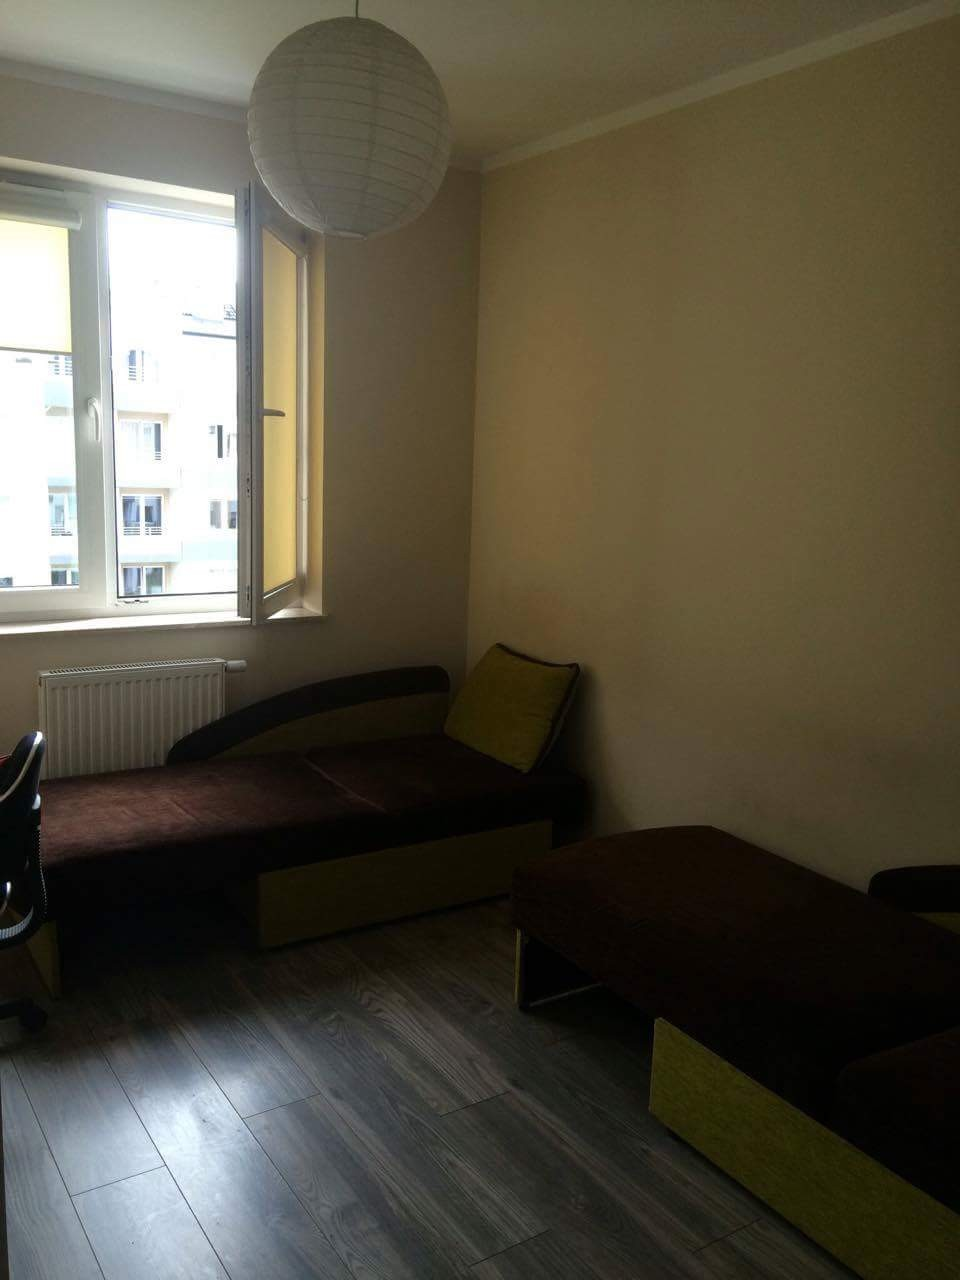 Cozy Room For Girl Room For Rent Wroclaw